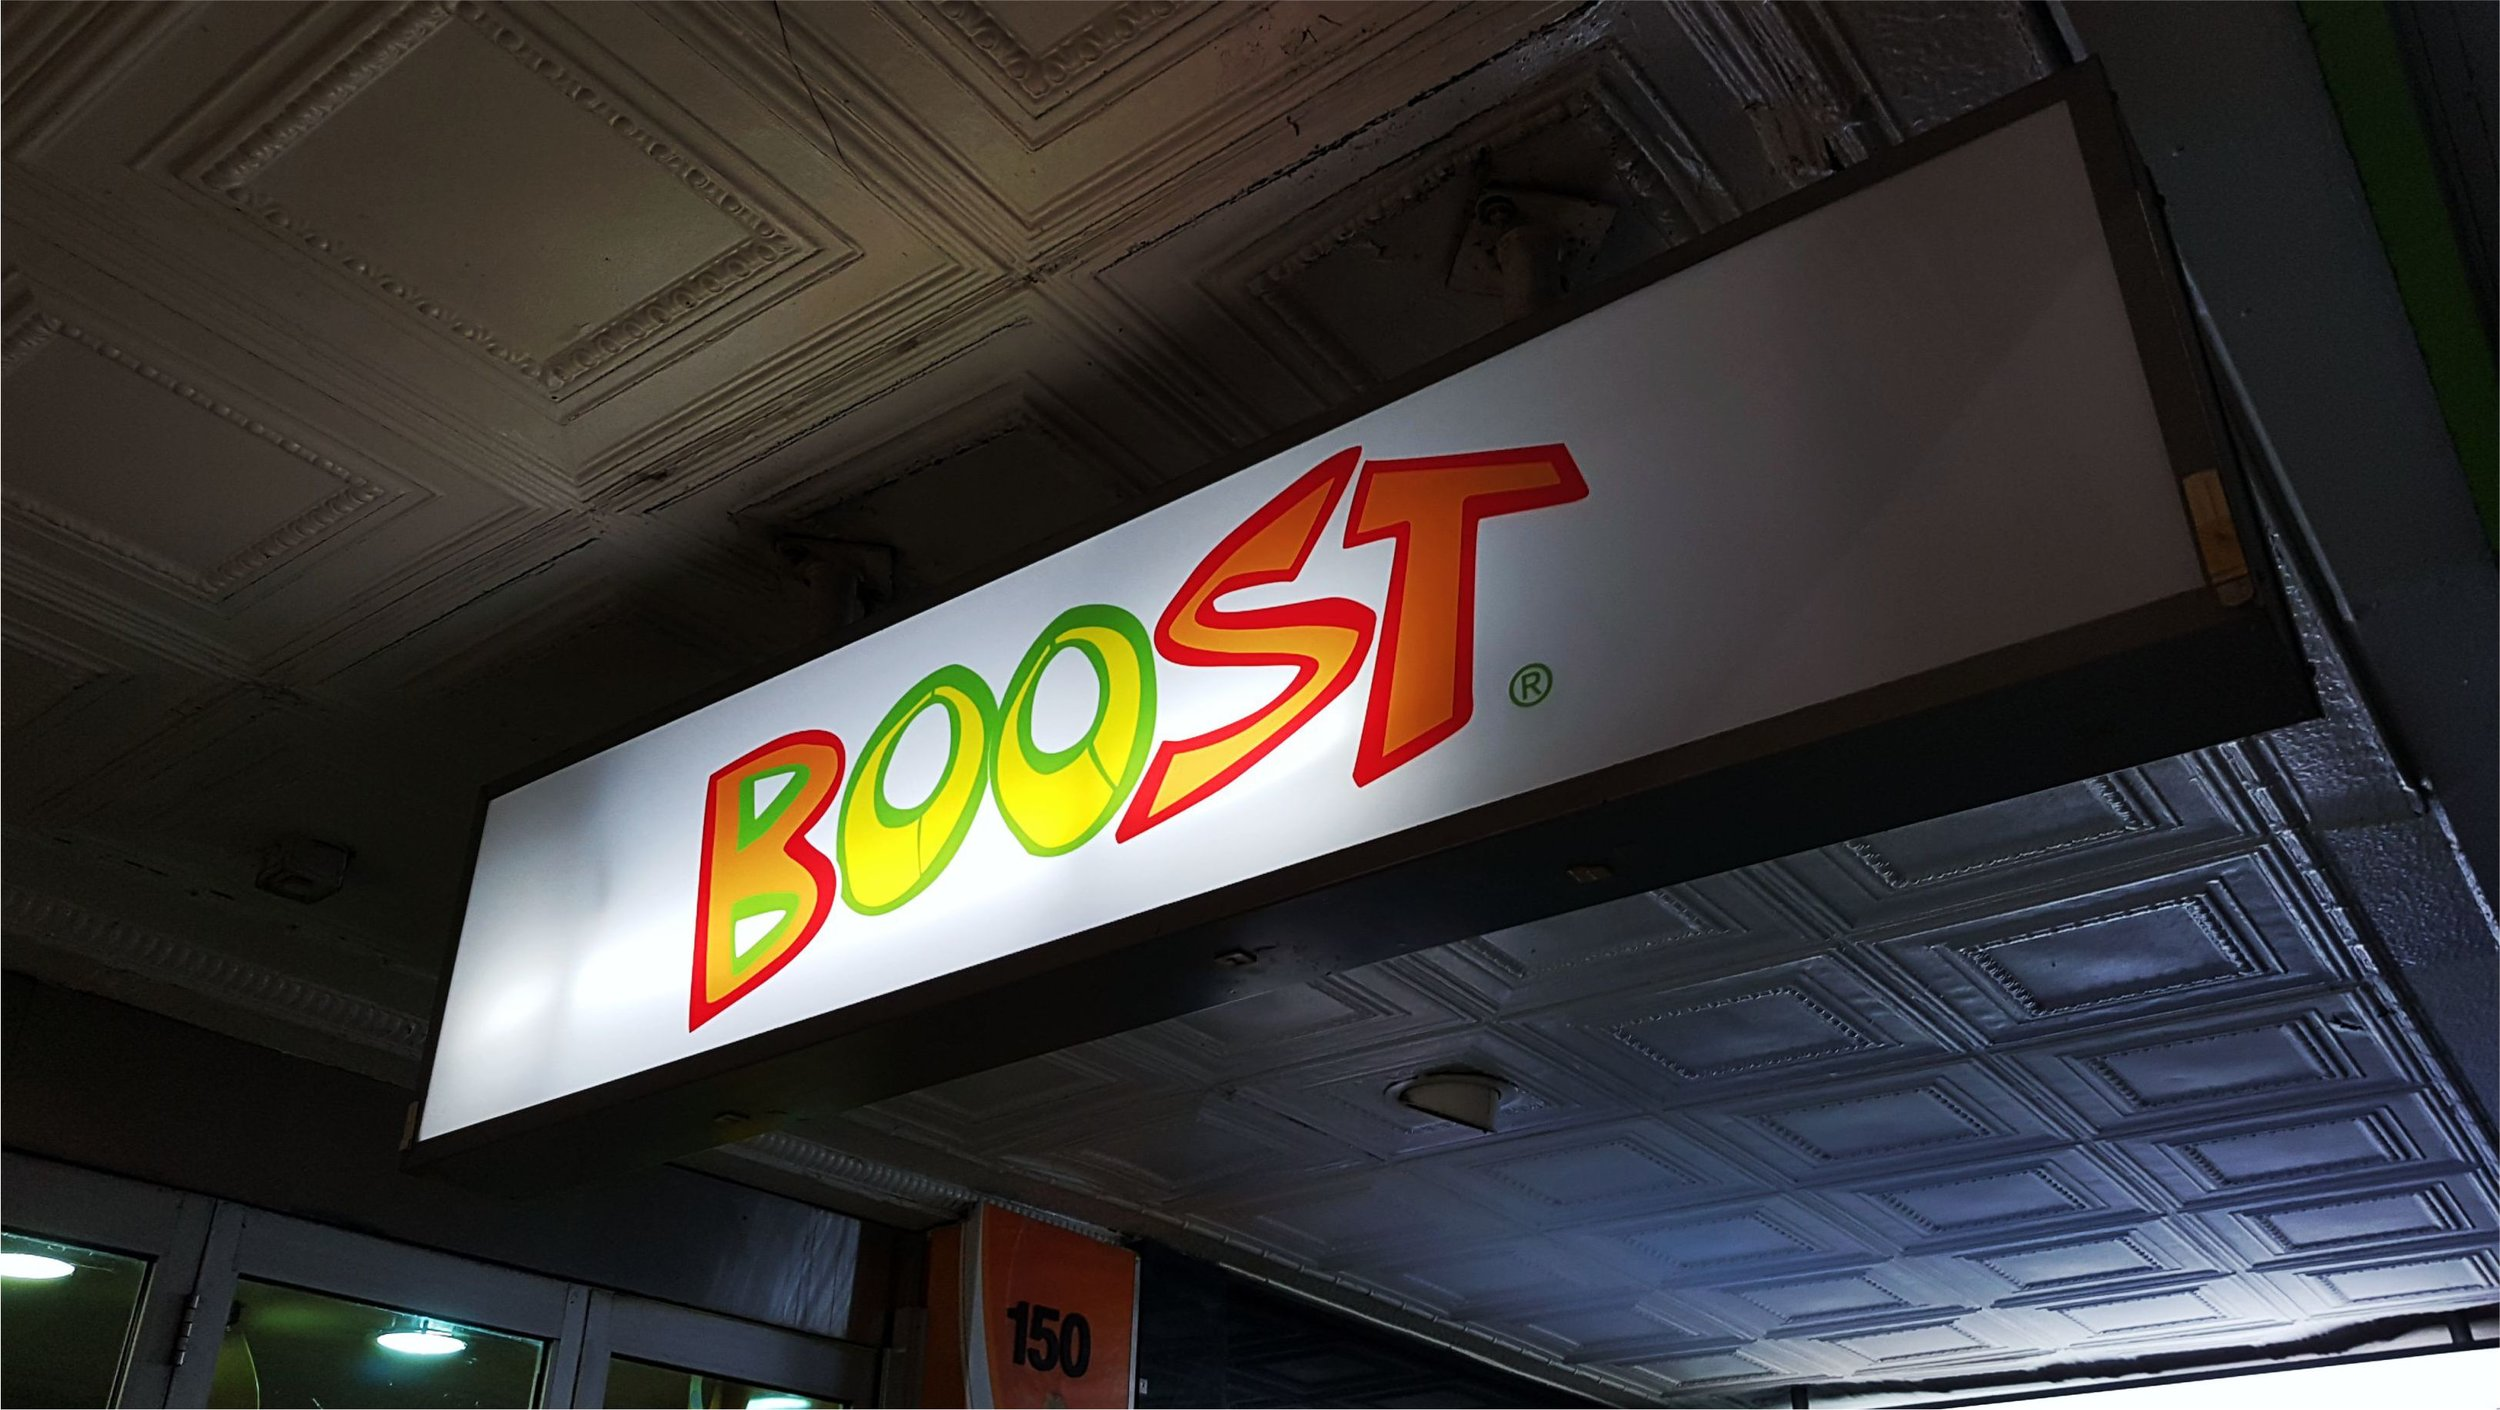 Boost Juice - Rundle Mall - Adelaide Signage - Signs Adelaide - Adelaide Signs - Illuminated Signage Adelaide - Lightbox Adelaide - Lightbox Sign - Sign Colour - Signage Adelaide - Shop Front Signs Adelaide.jpg